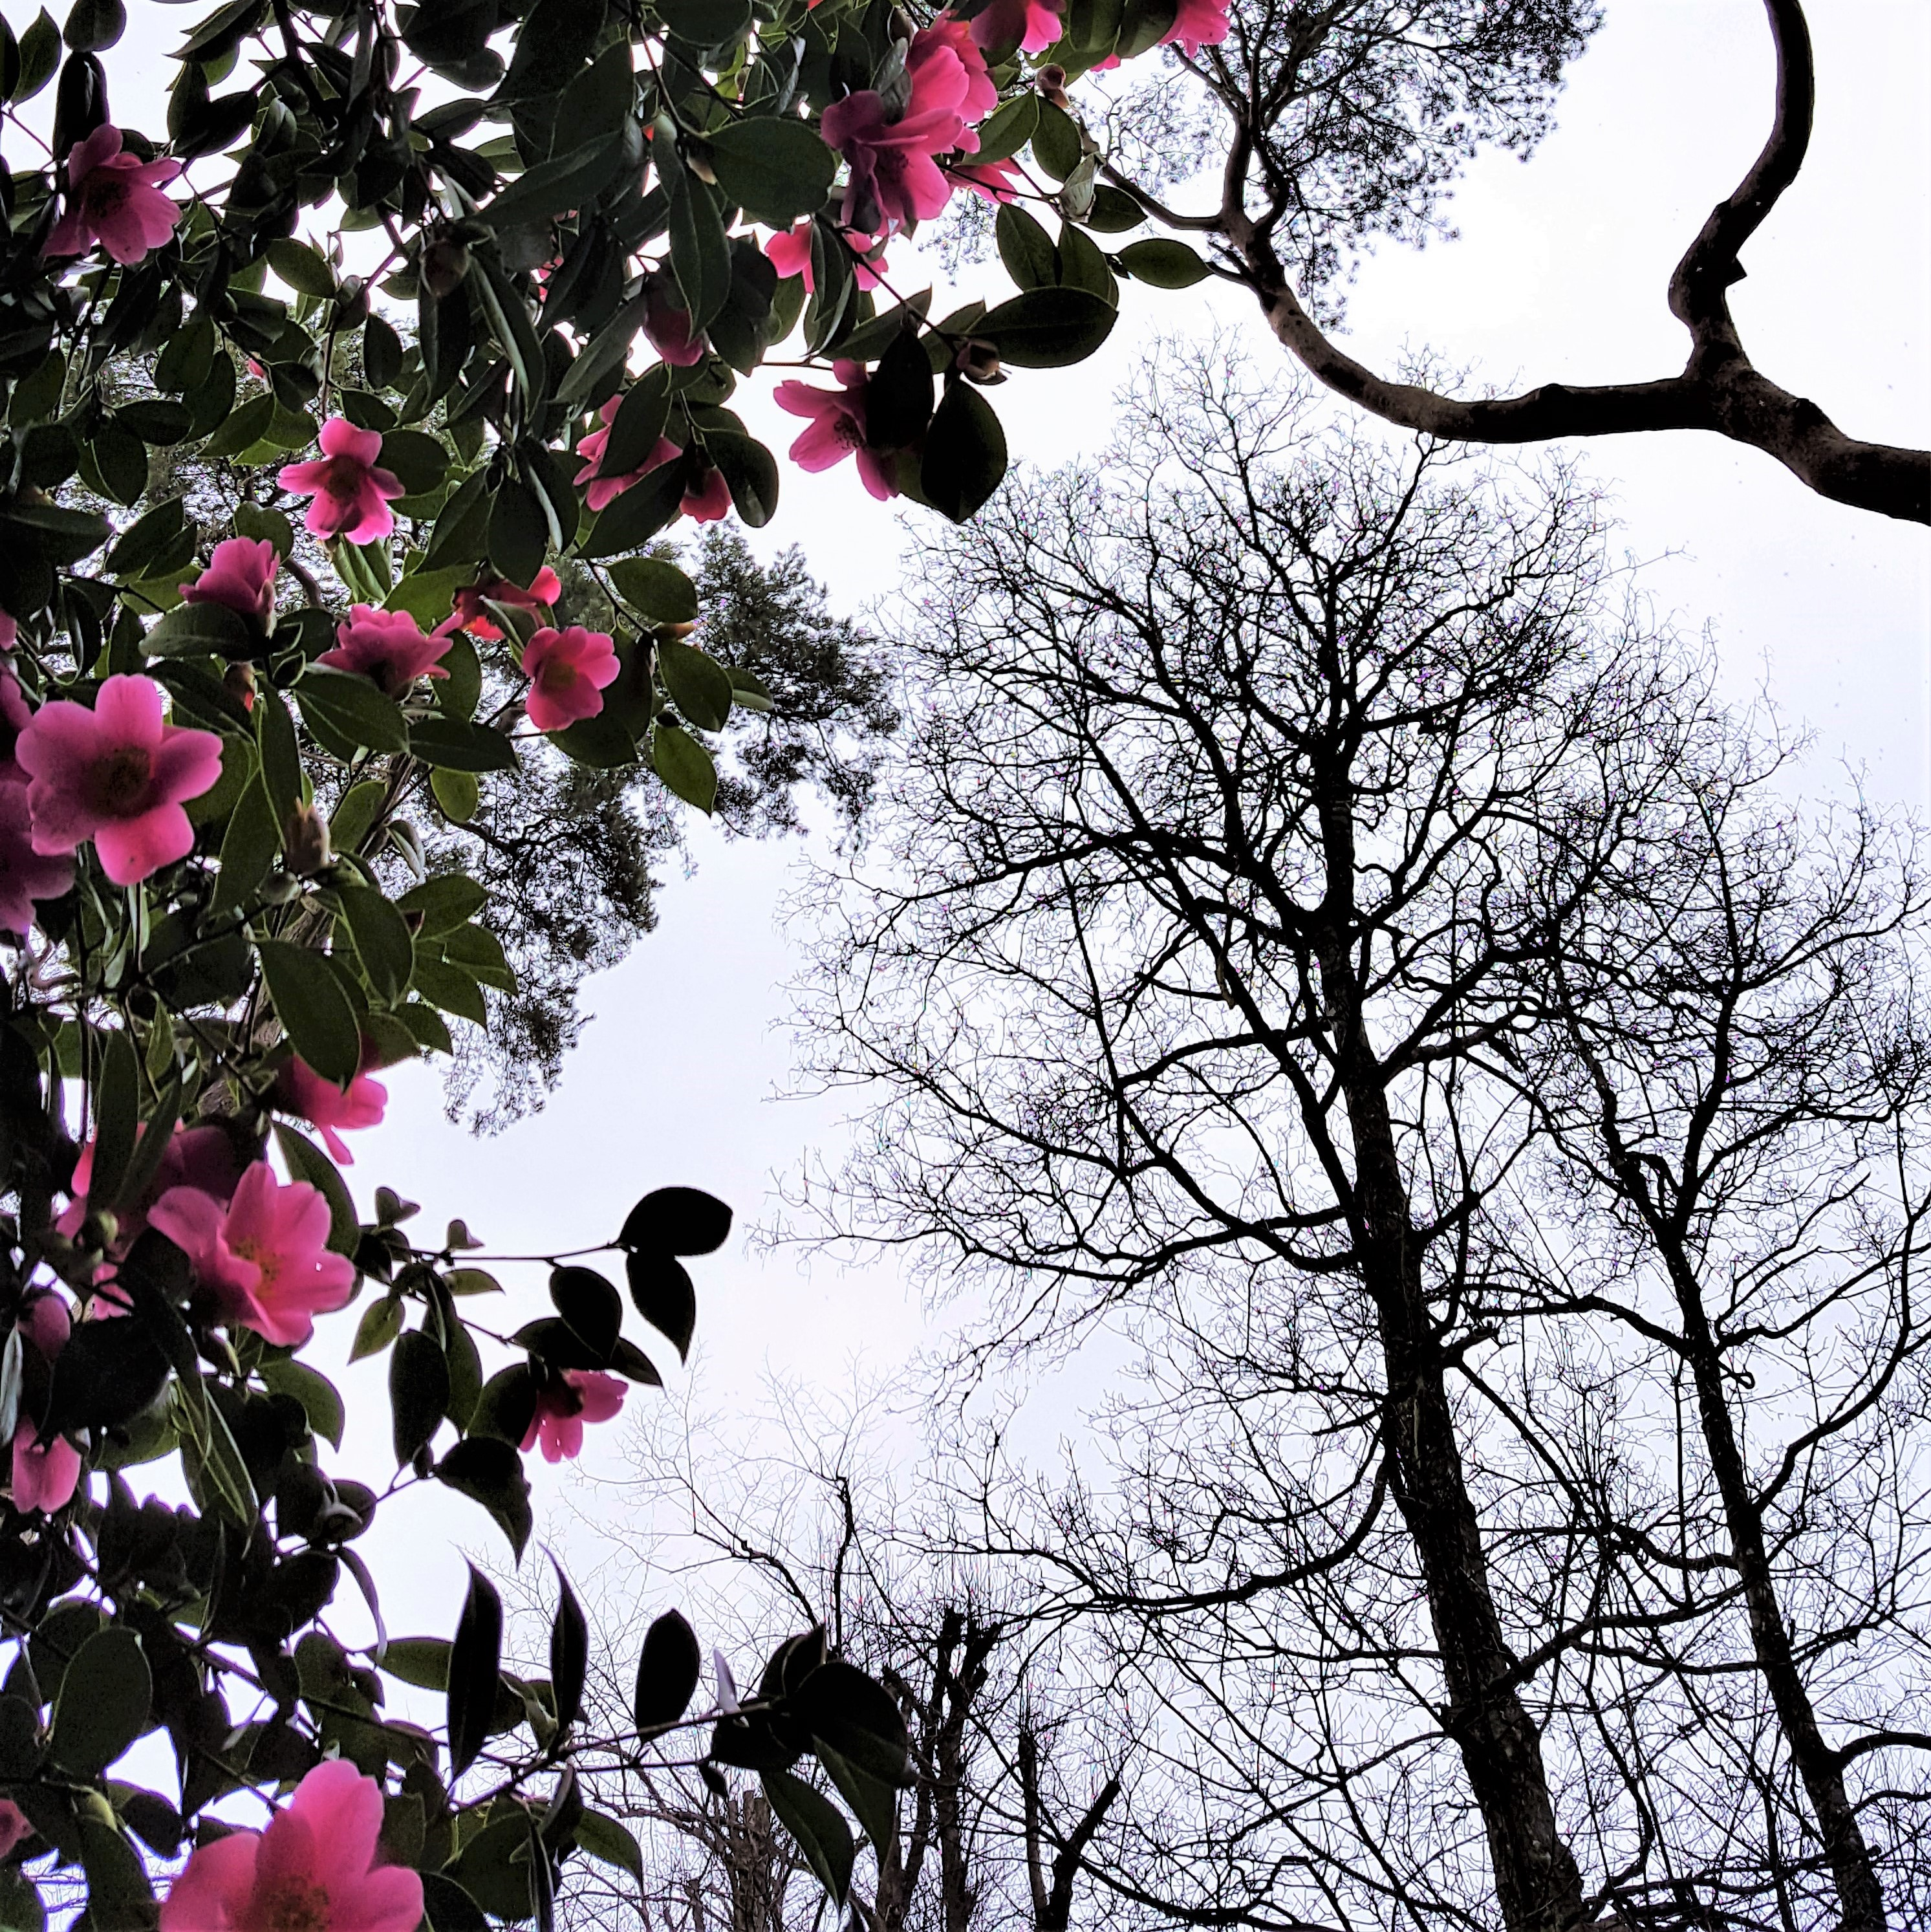 Pink camellias and tree silhouettes in winter.